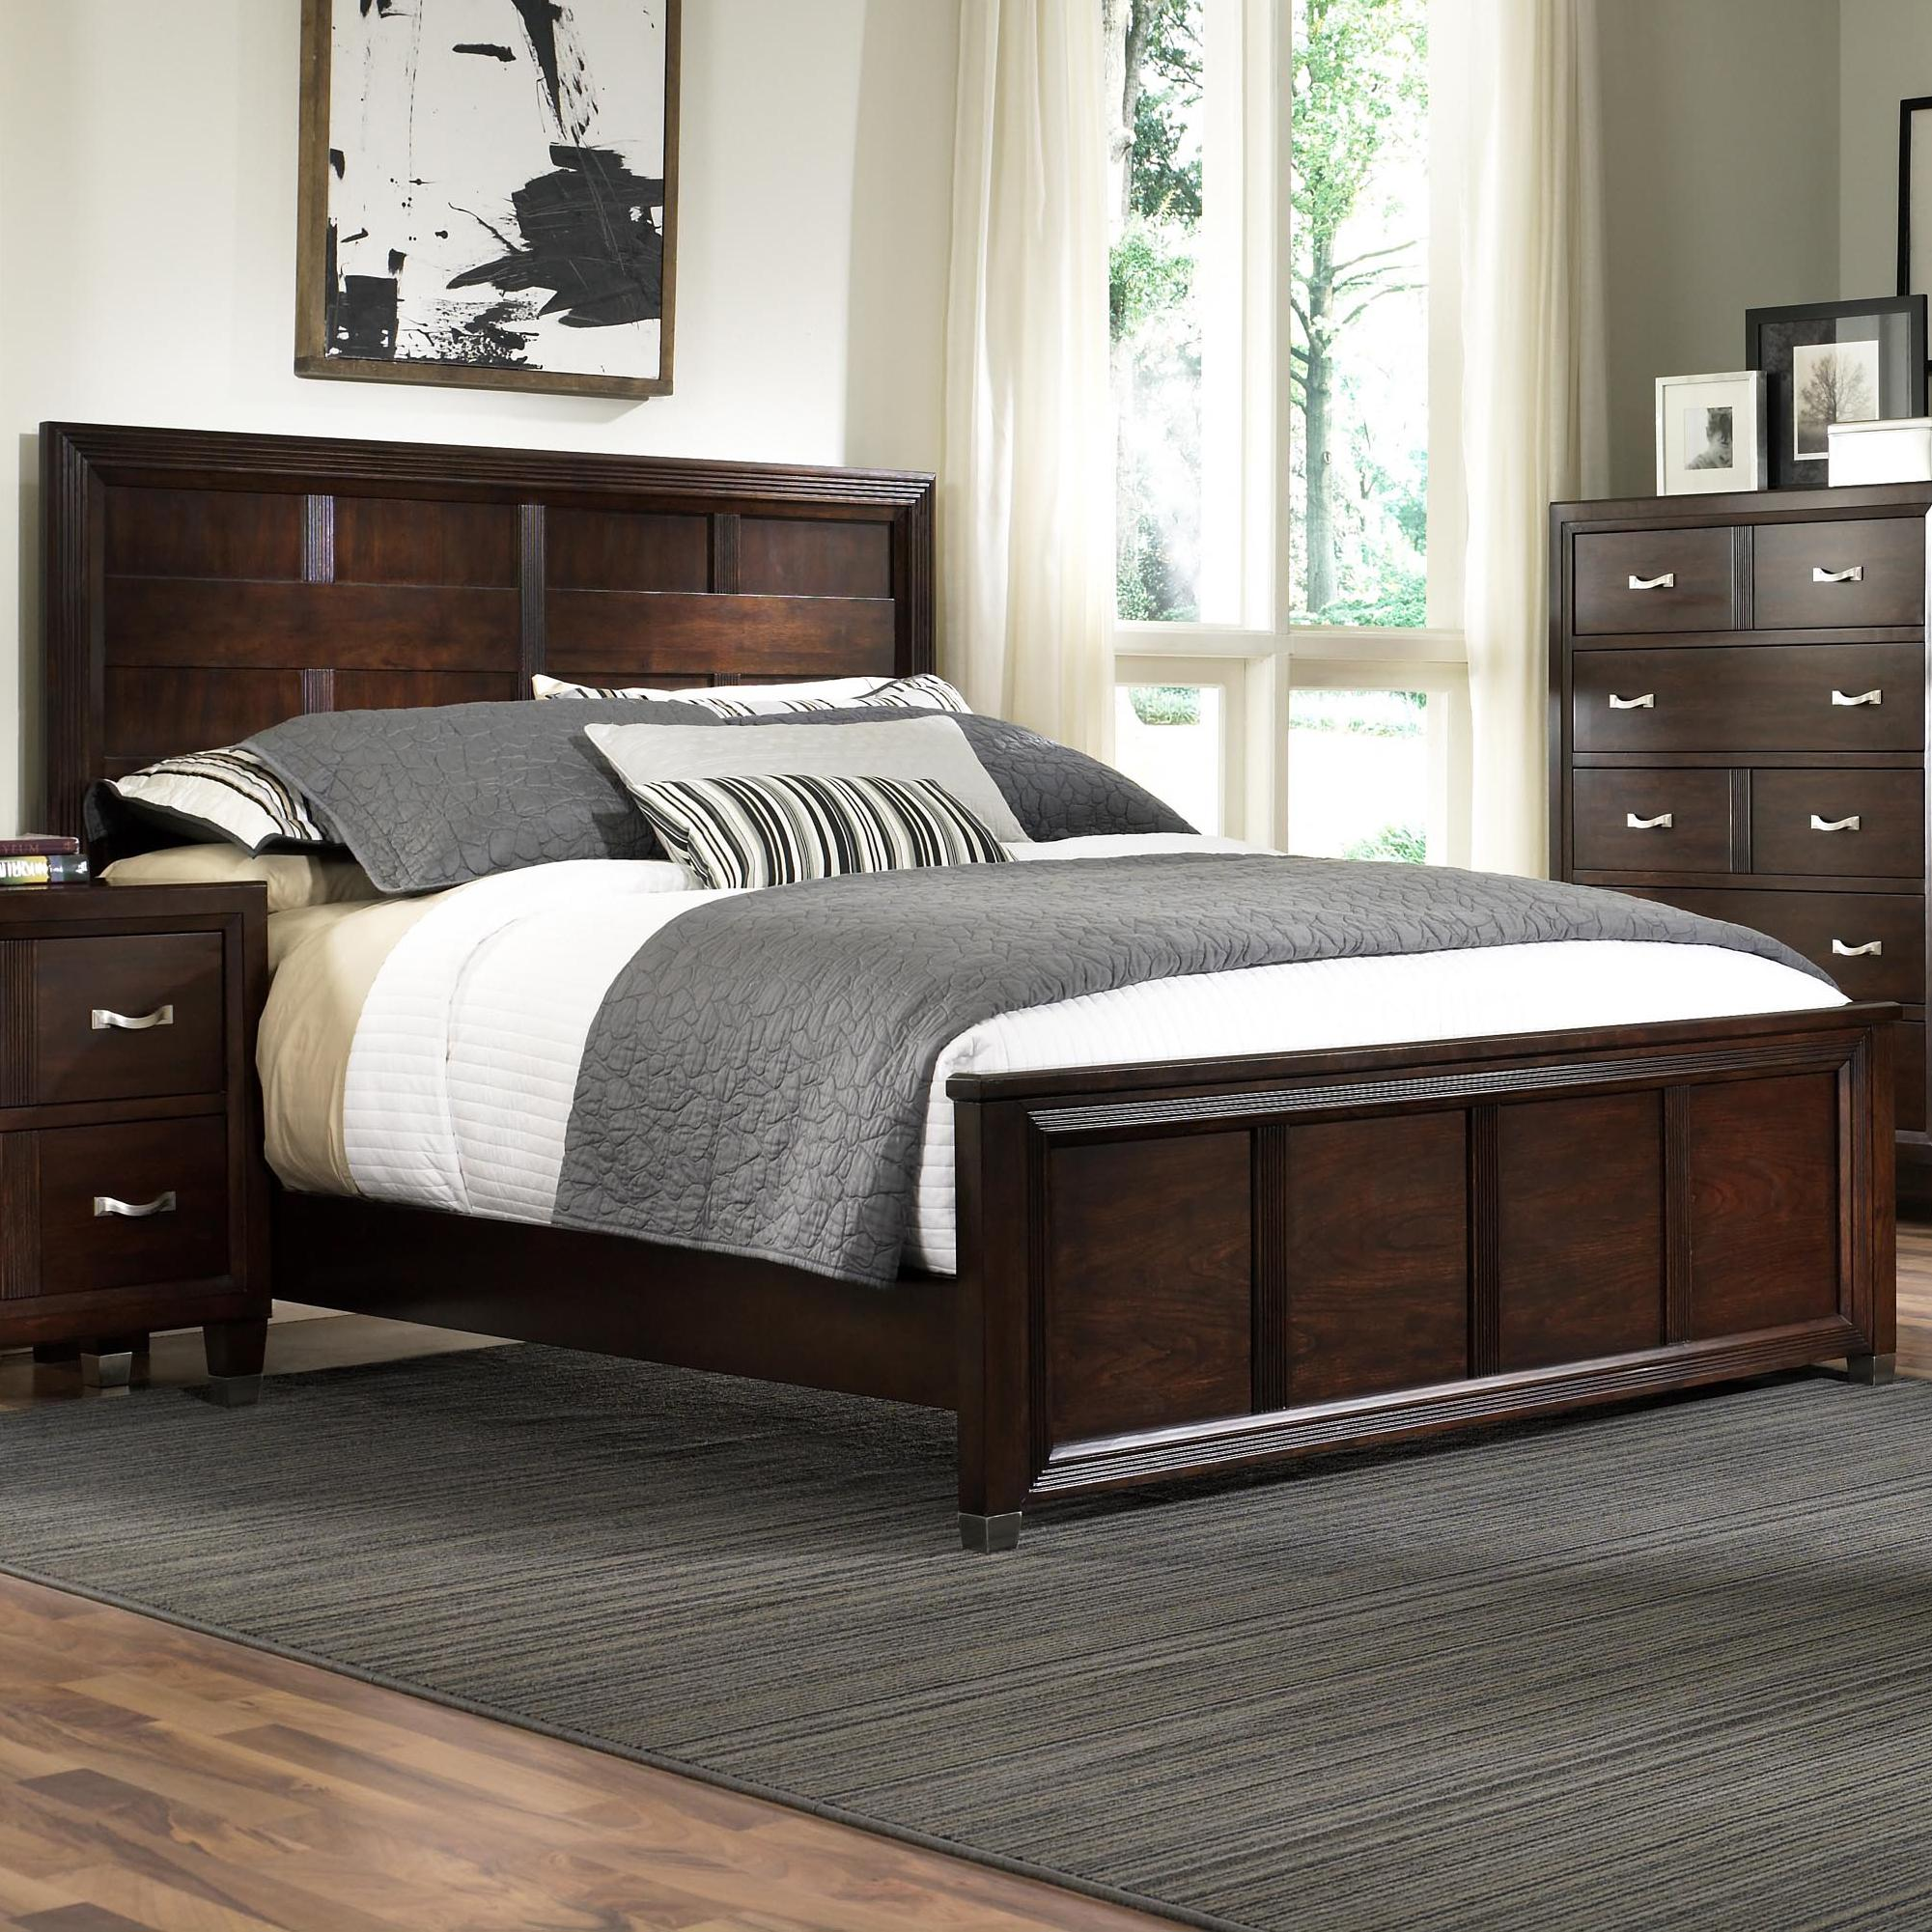 Broyhill Furniture Eastlake 2 King Panel Headboard and Footboard Bed - Item Number: 4264-252+263+450